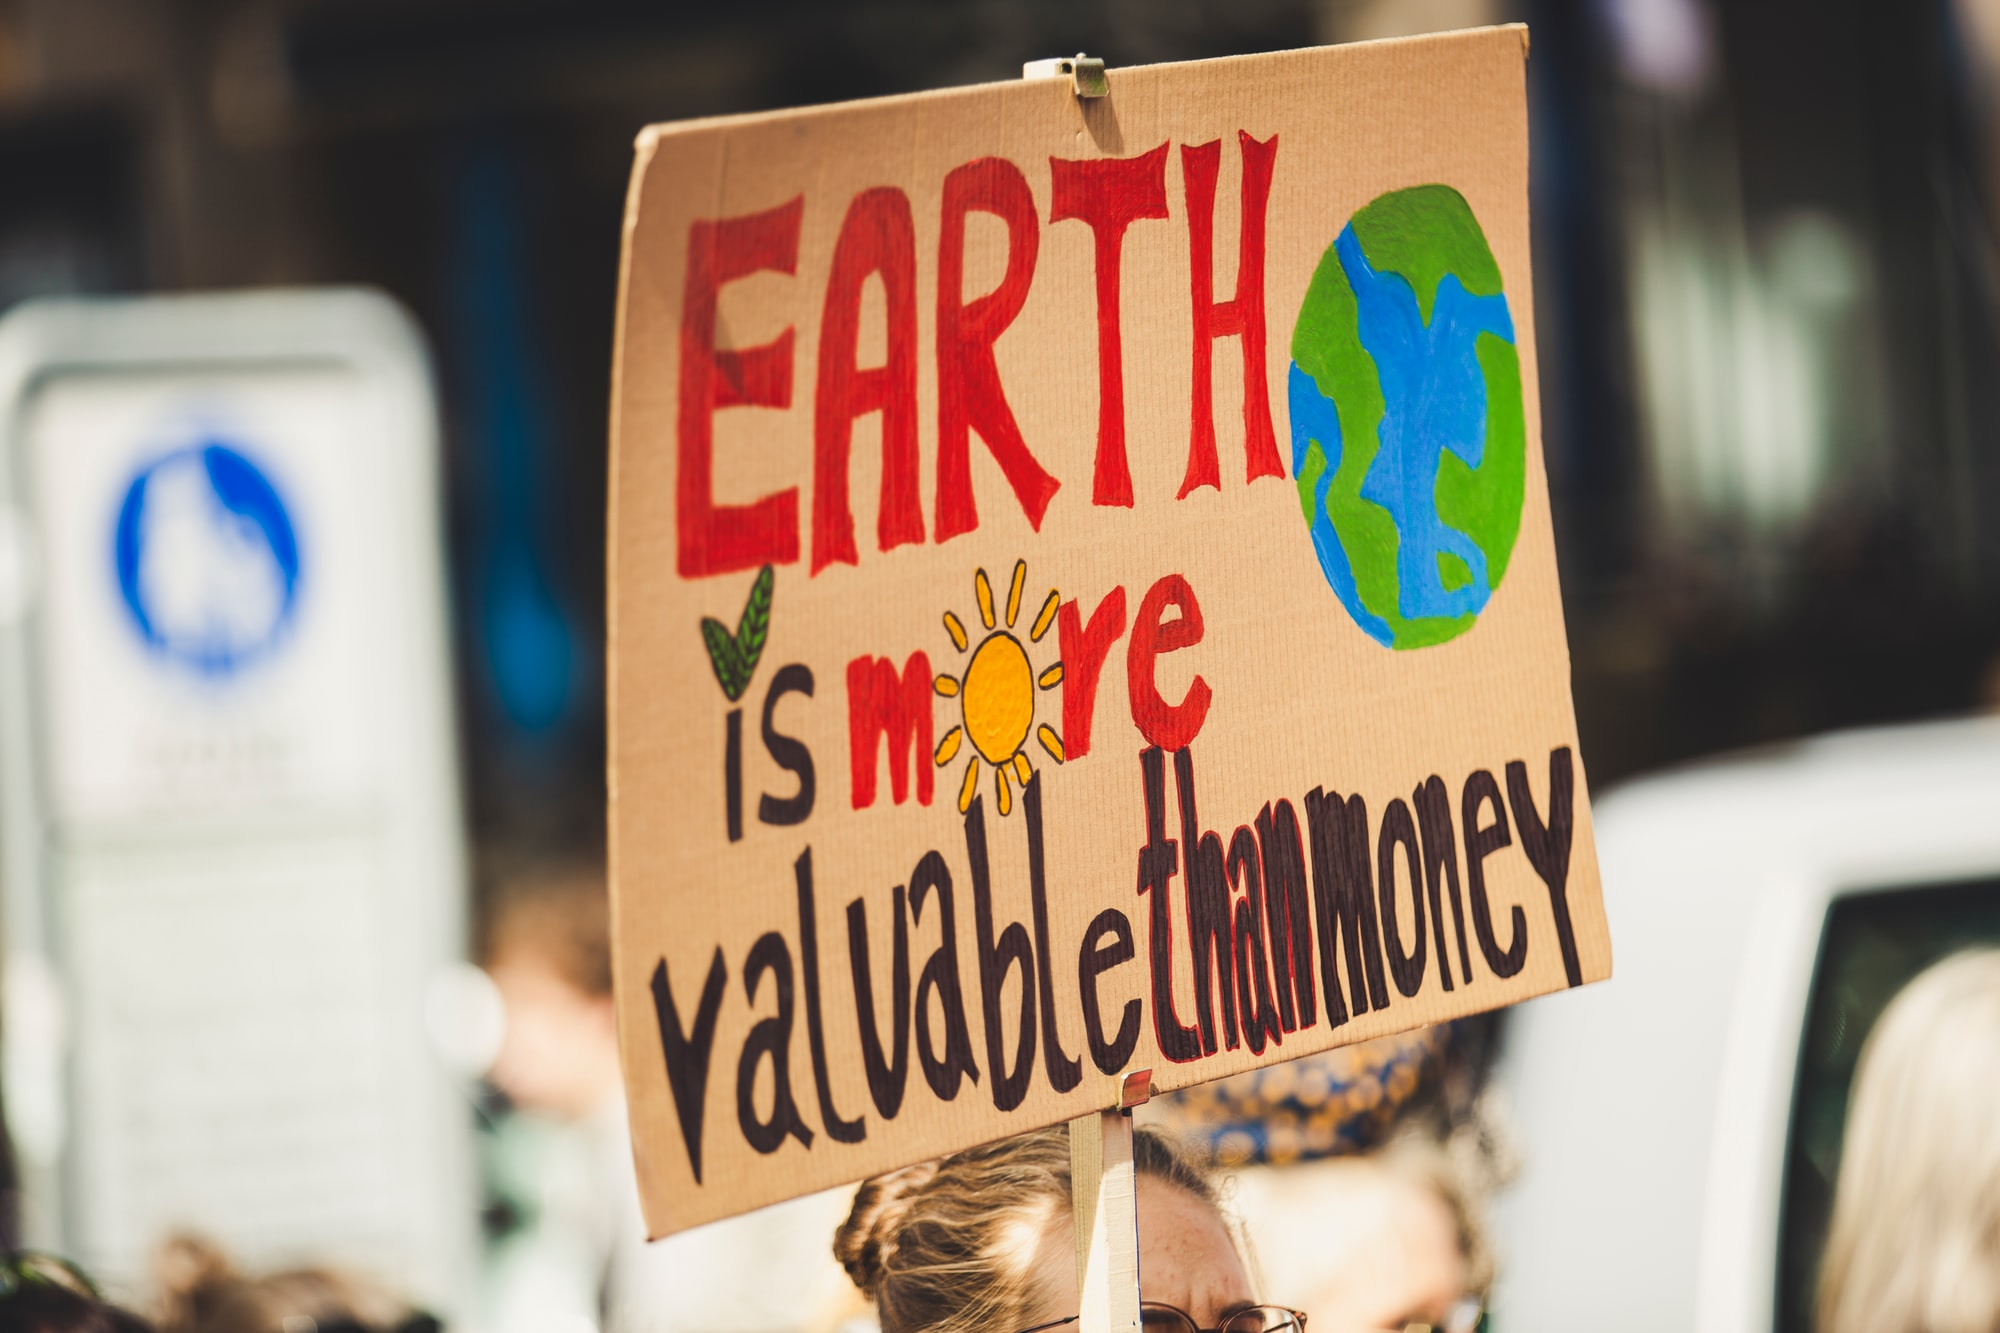 EARTH IS MORE VALUABLE THAN MONEY. Global climate change strike - No Planet B - 09-20-2019